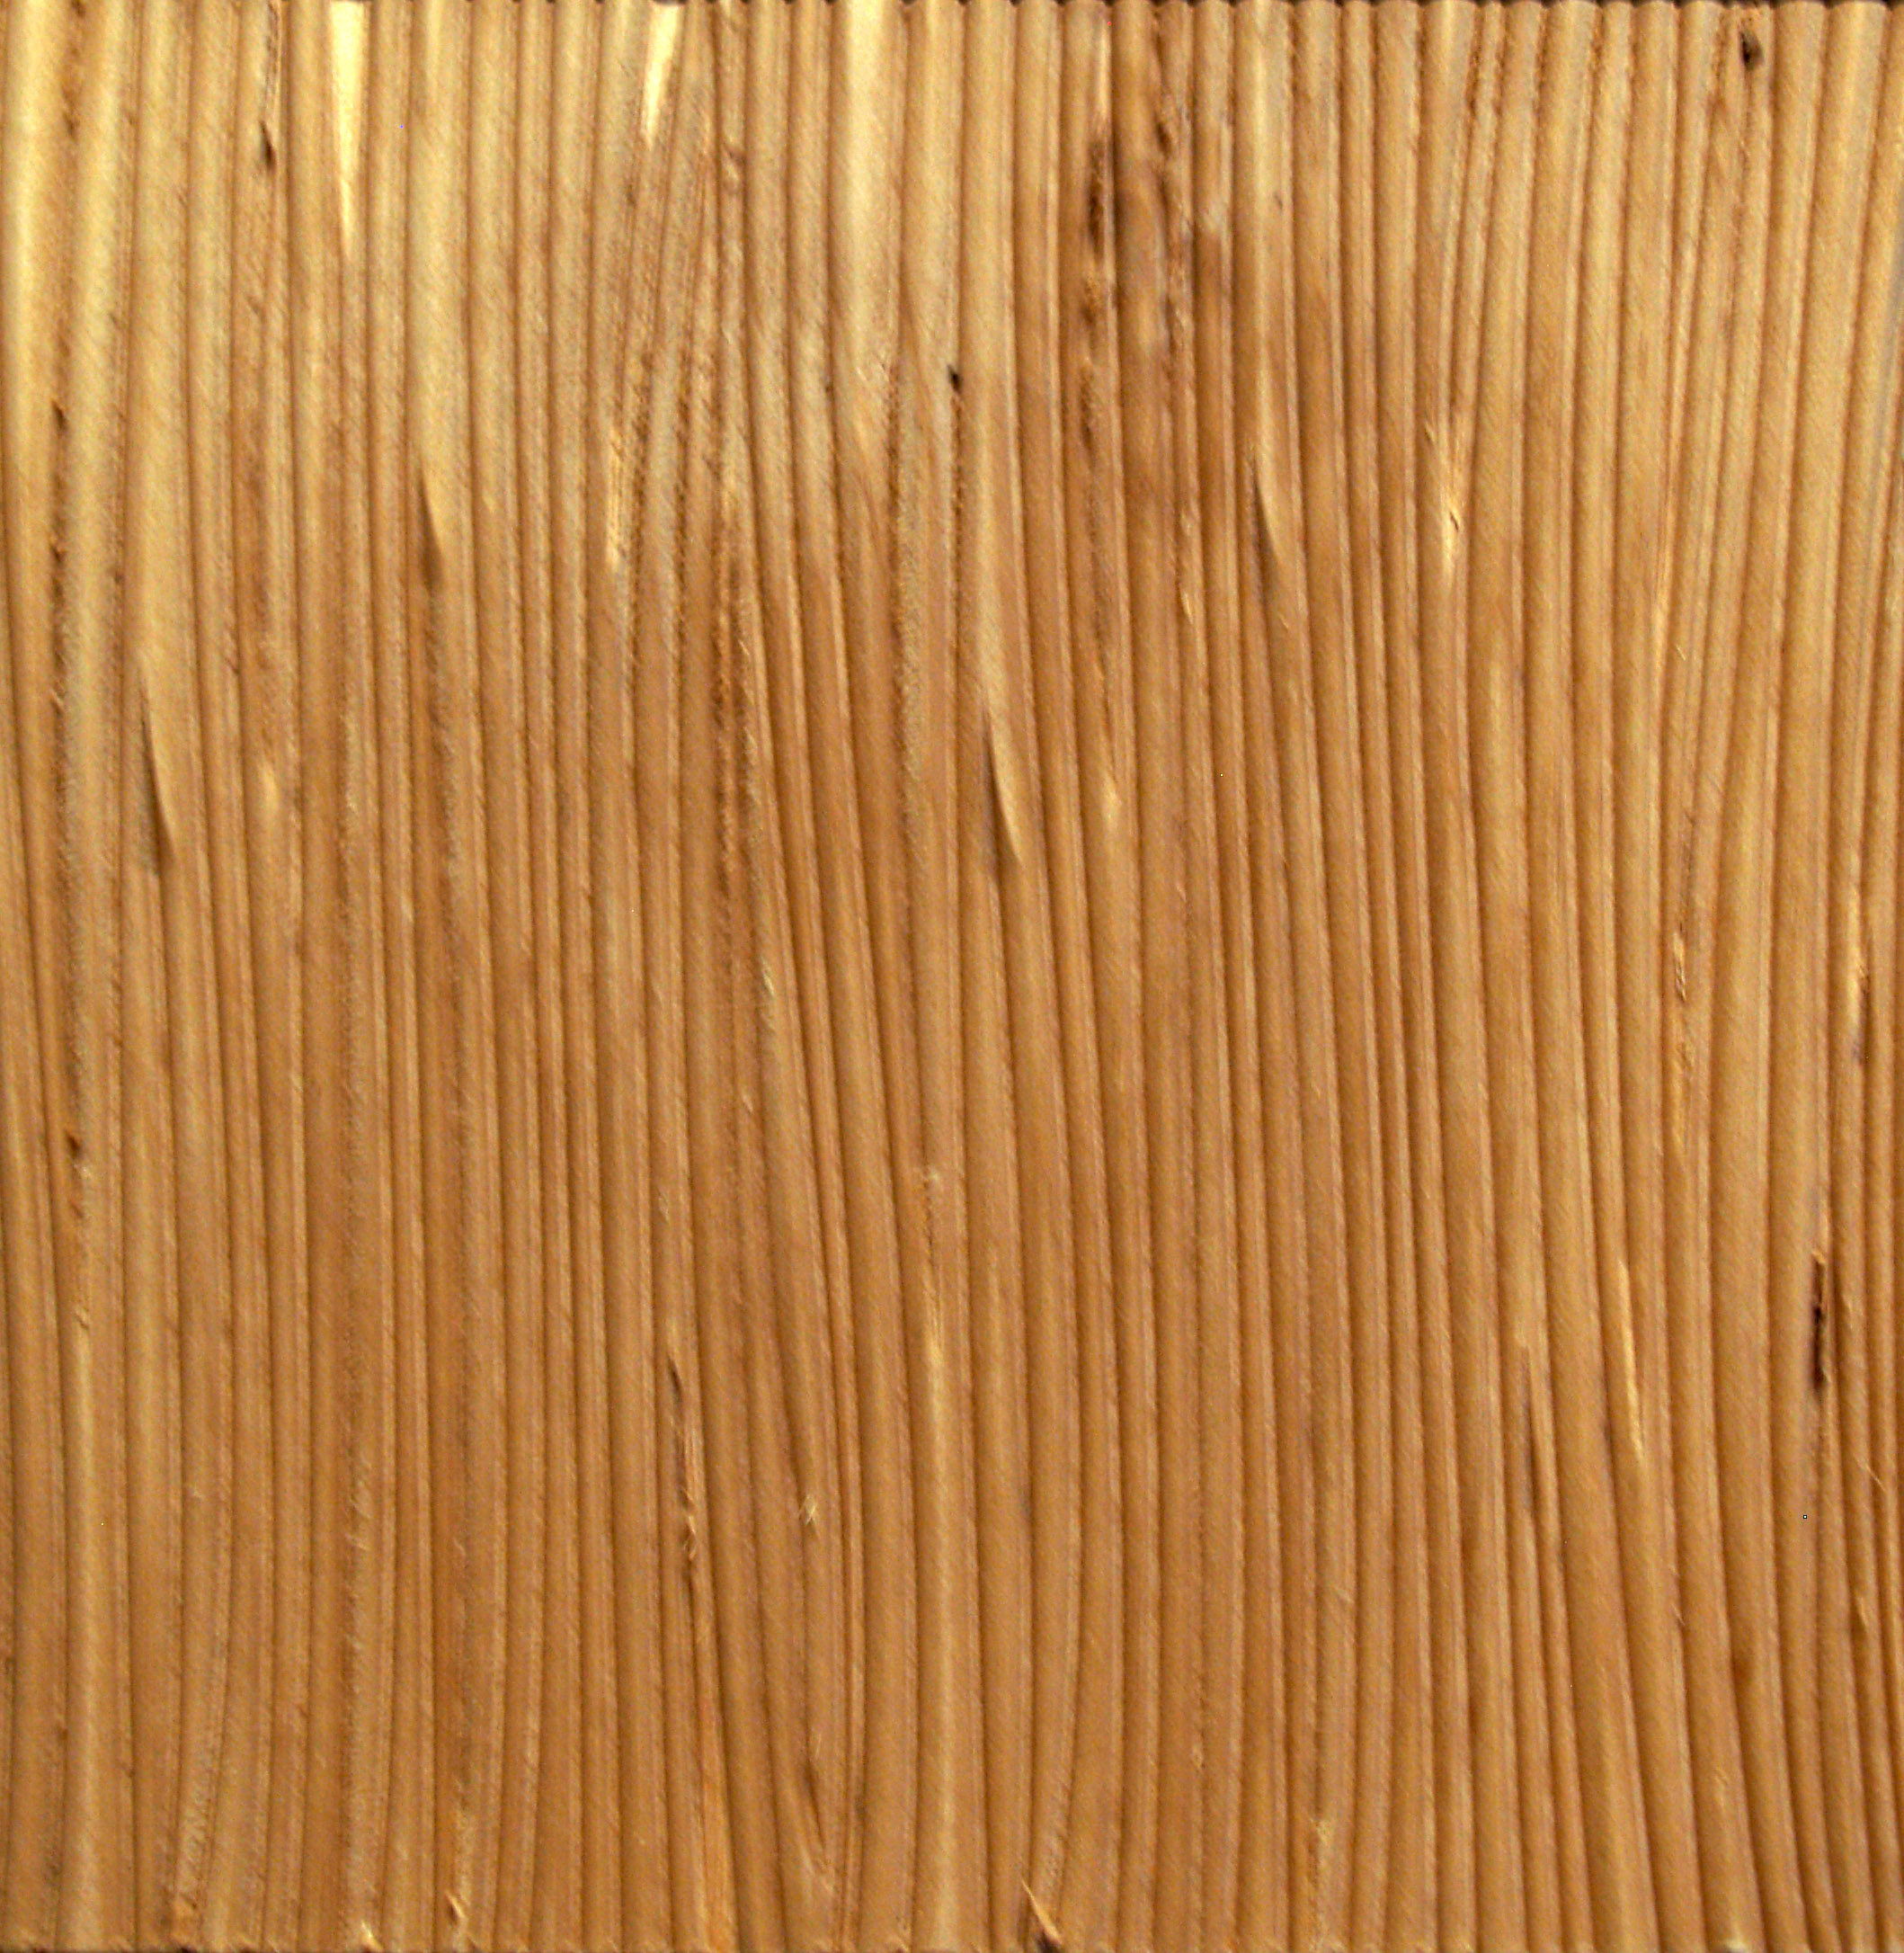 Reeds   We used a very fine detail bit to accomplish this organic reed texture. Shown on clear alder this panel is perfect for the fronts of doors or as an insert panel in casework.